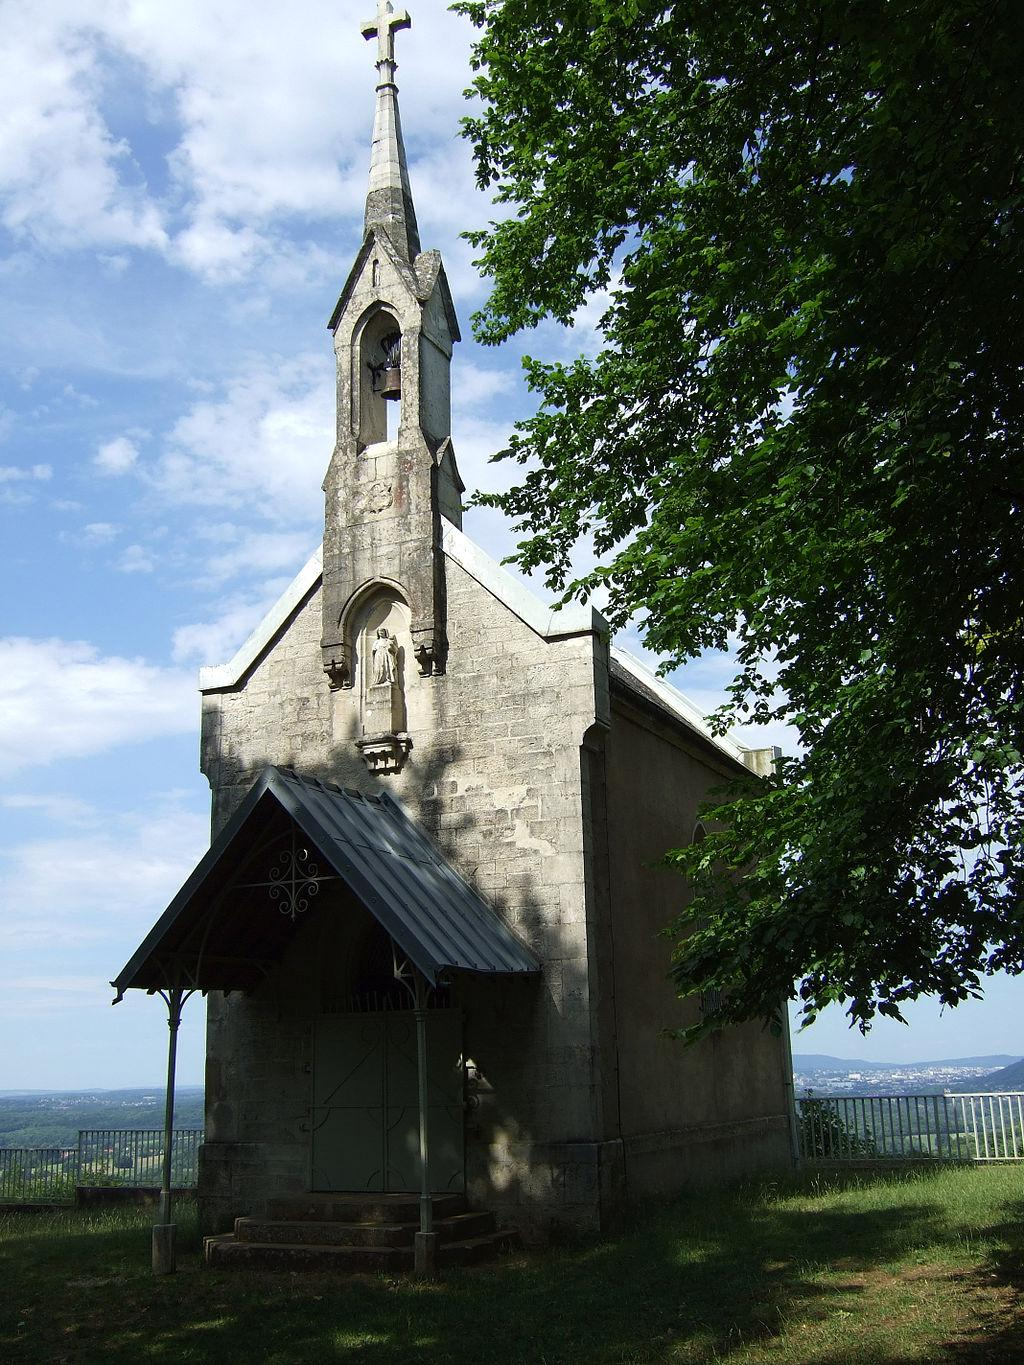 La chapelle Notre-Dame-du-Mont de Thoraise - By MJohnP68 [CC BY-SA 3.0  (https://creativecommons.org/licenses/by-sa/3.0)], from Wikimedia Commons - 2011